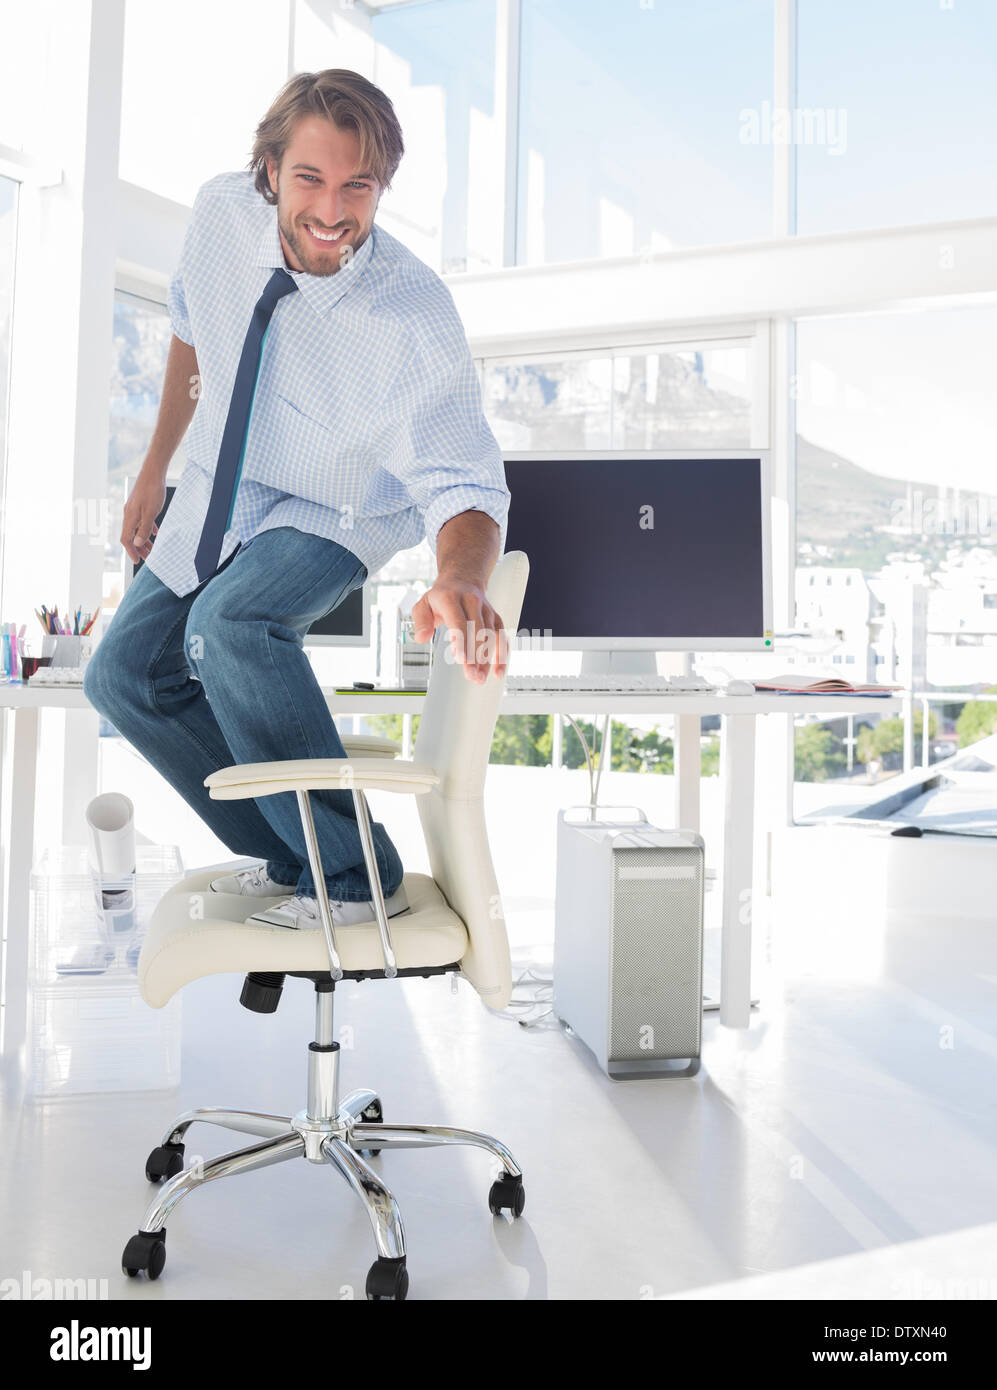 Man surfing his office chair - Stock Image